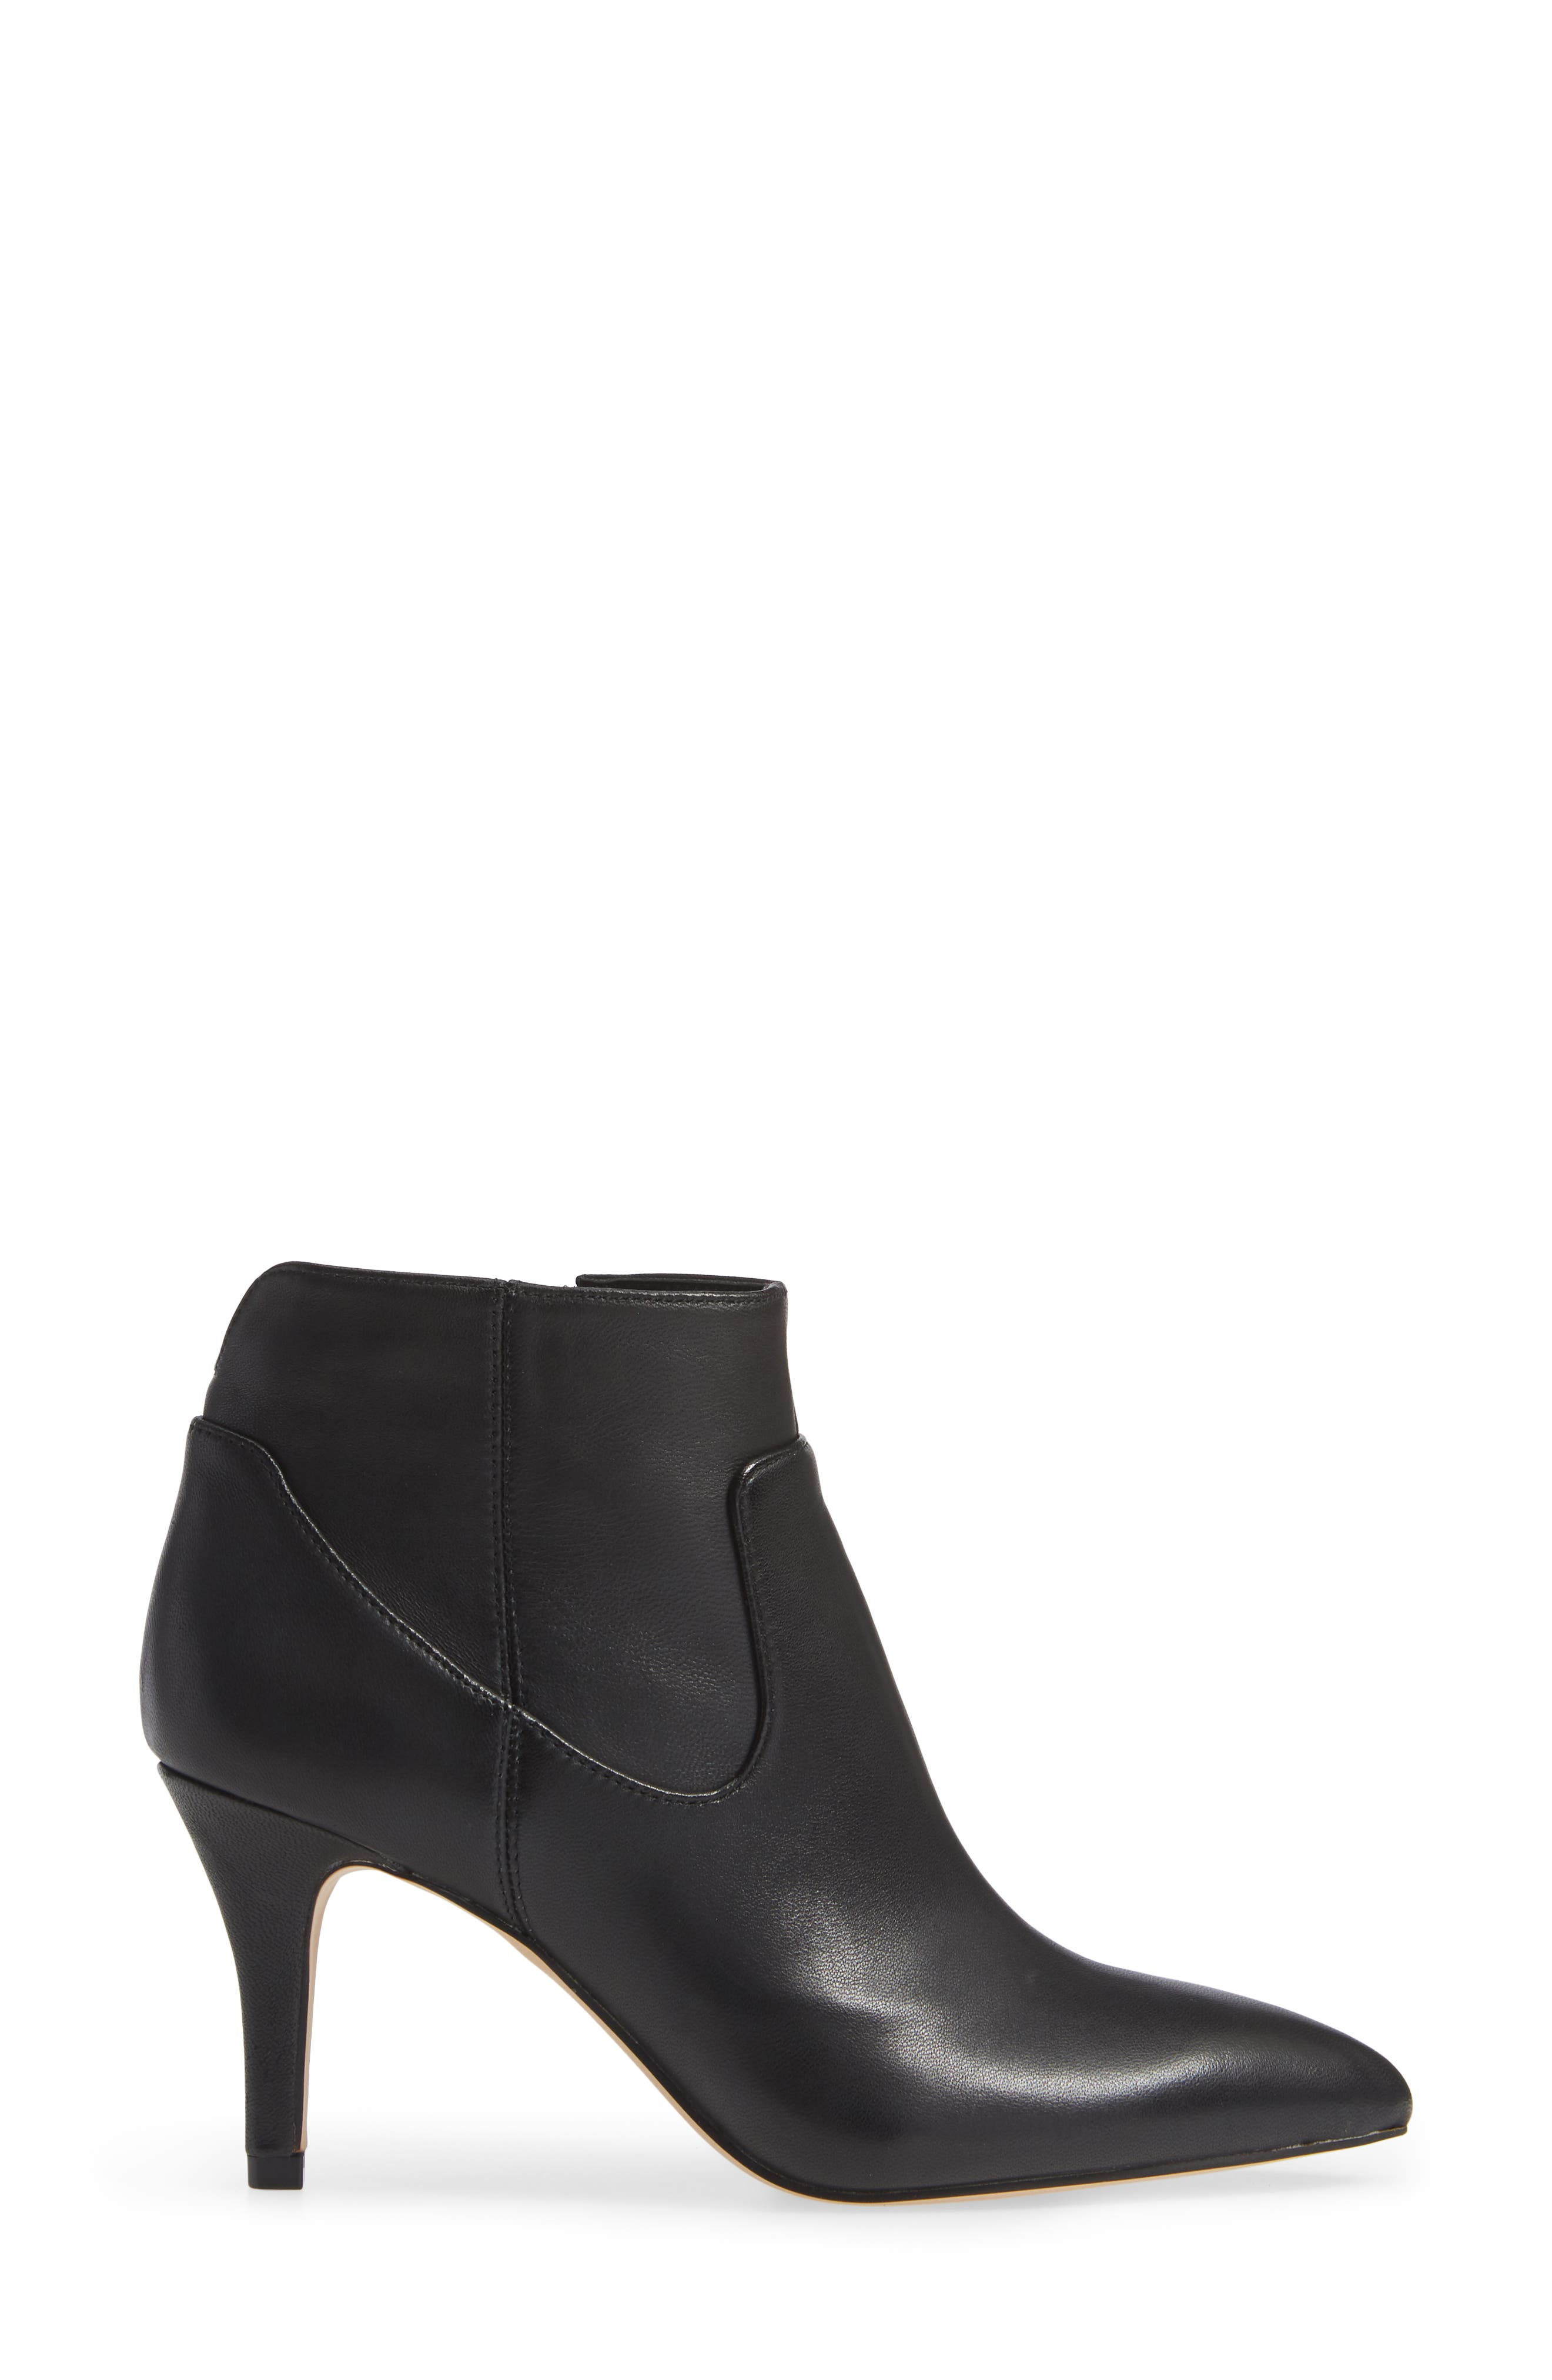 SOLE SOCIETY,                             Raphaela Bootie,                             Alternate thumbnail 3, color,                             BLACK LEATHER